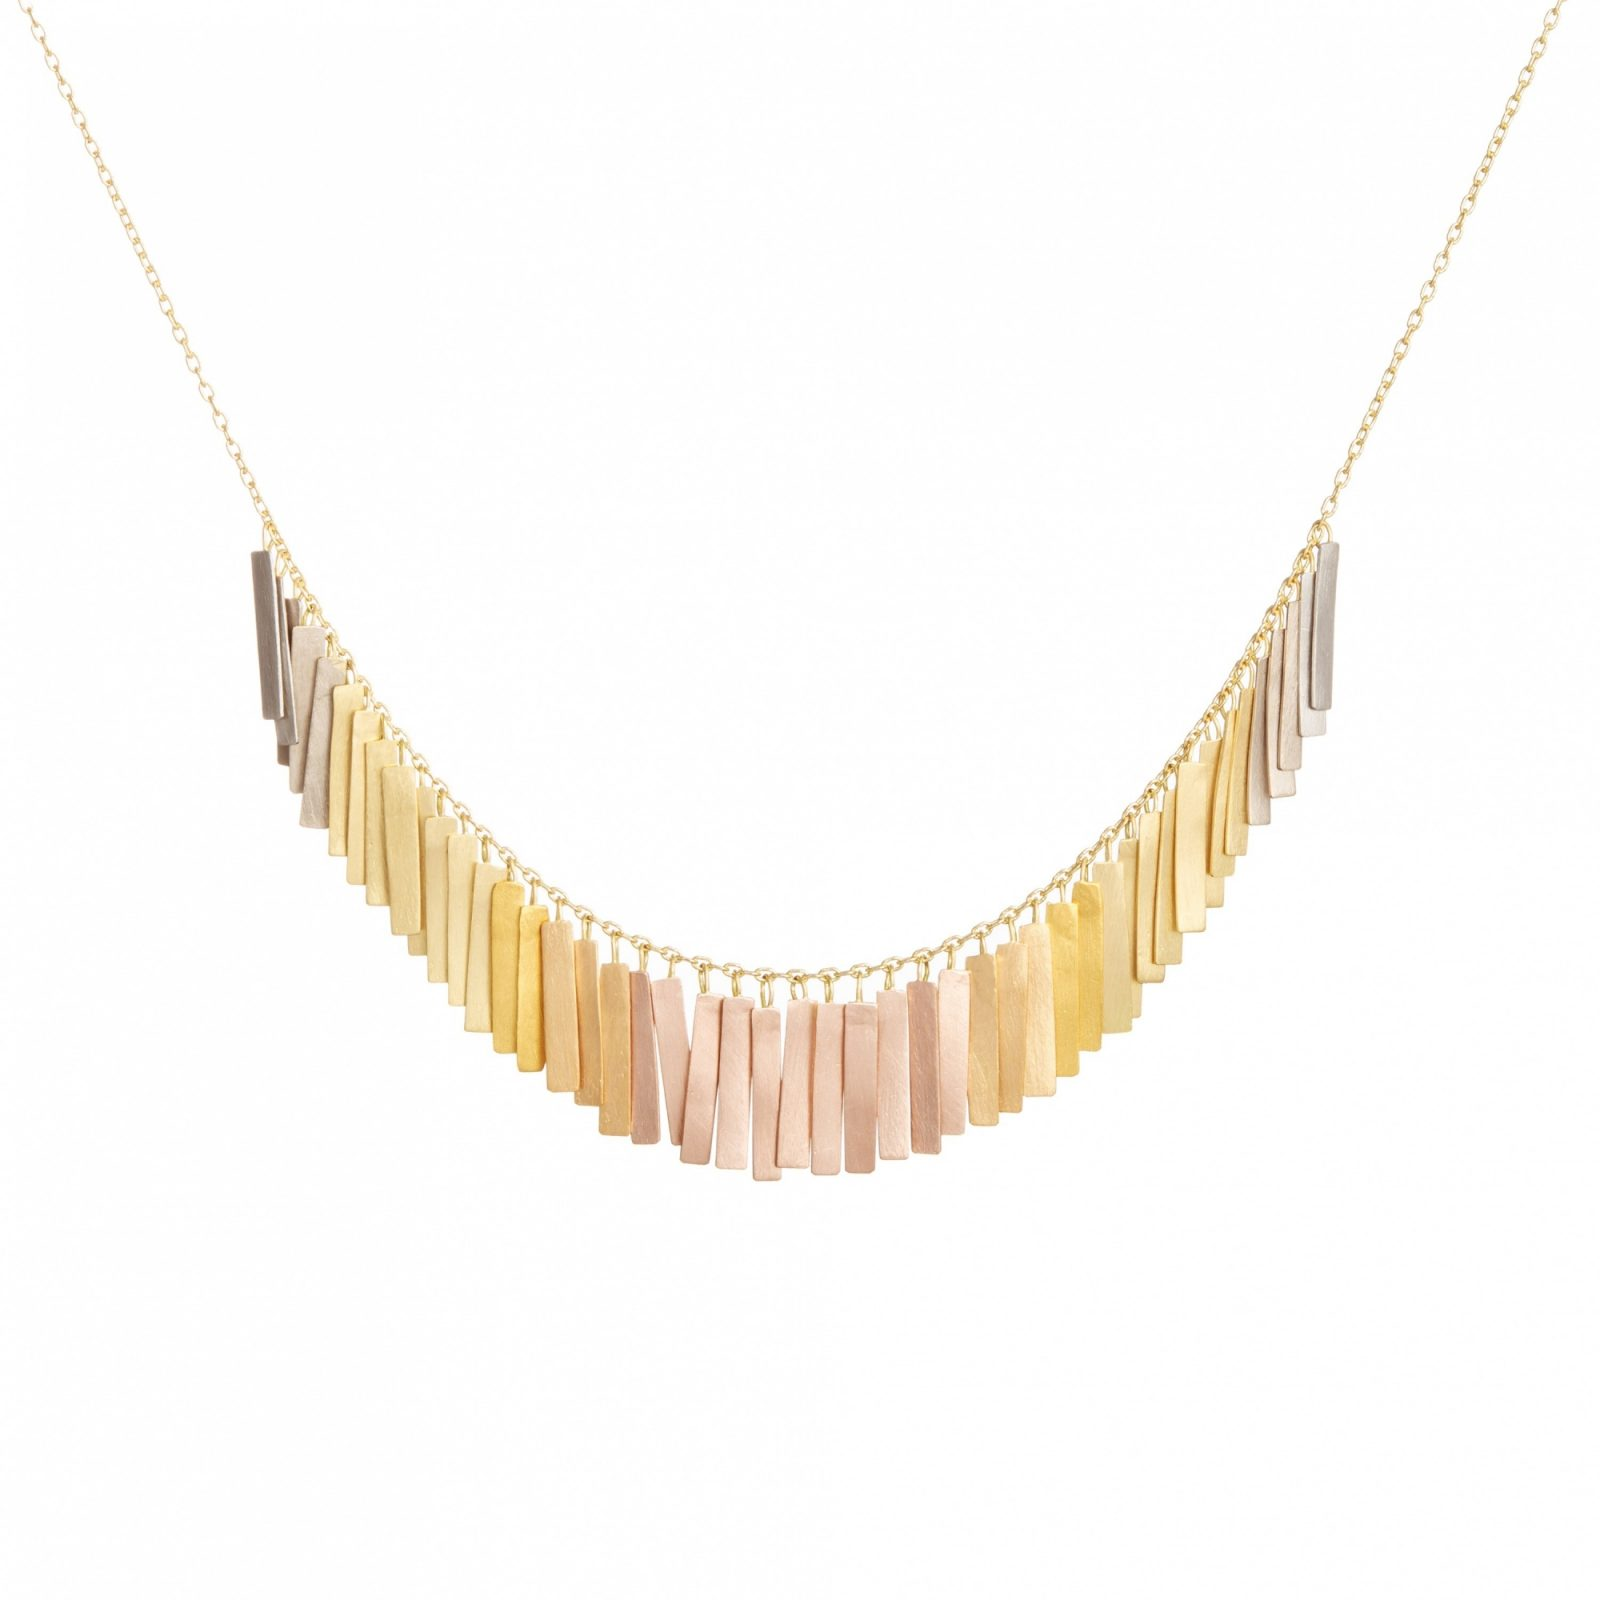 Sia Taylor KN29 RAIN Rainbow Gold Sunset Fringe Arc Necklace WB